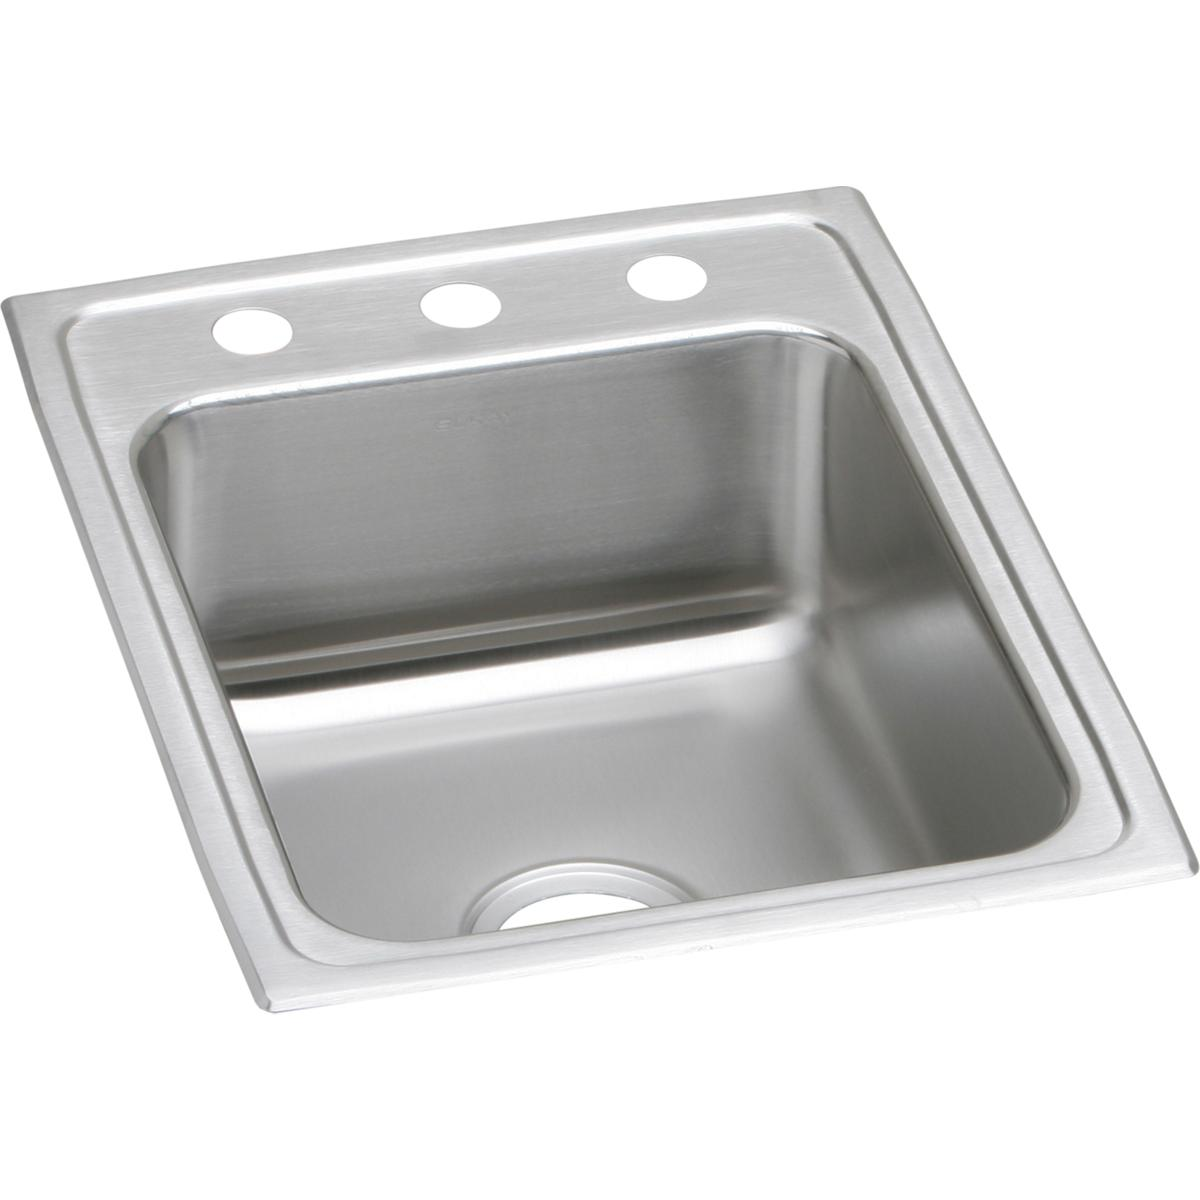 "Elkay Lustertone Classic Stainless Steel 17"" x 22"" x 6"", Single Bowl Drop-in ADA Sink"